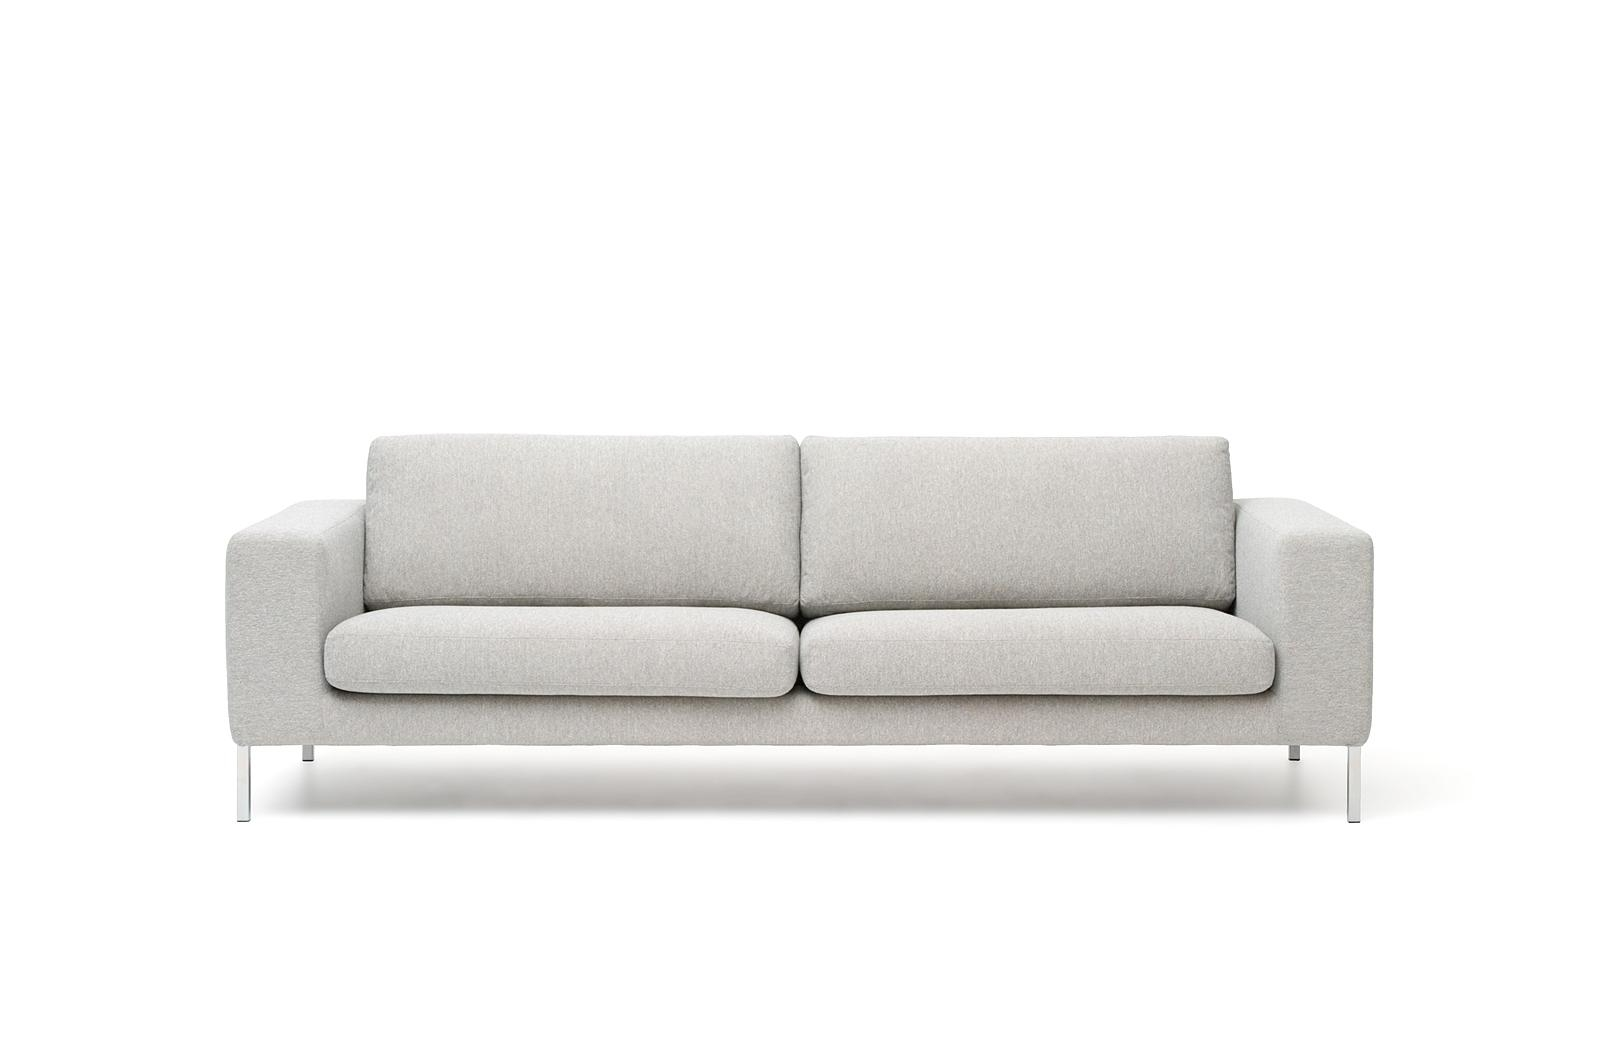 Neo | Bensen Throughout Bensen Sofas (View 4 of 20)